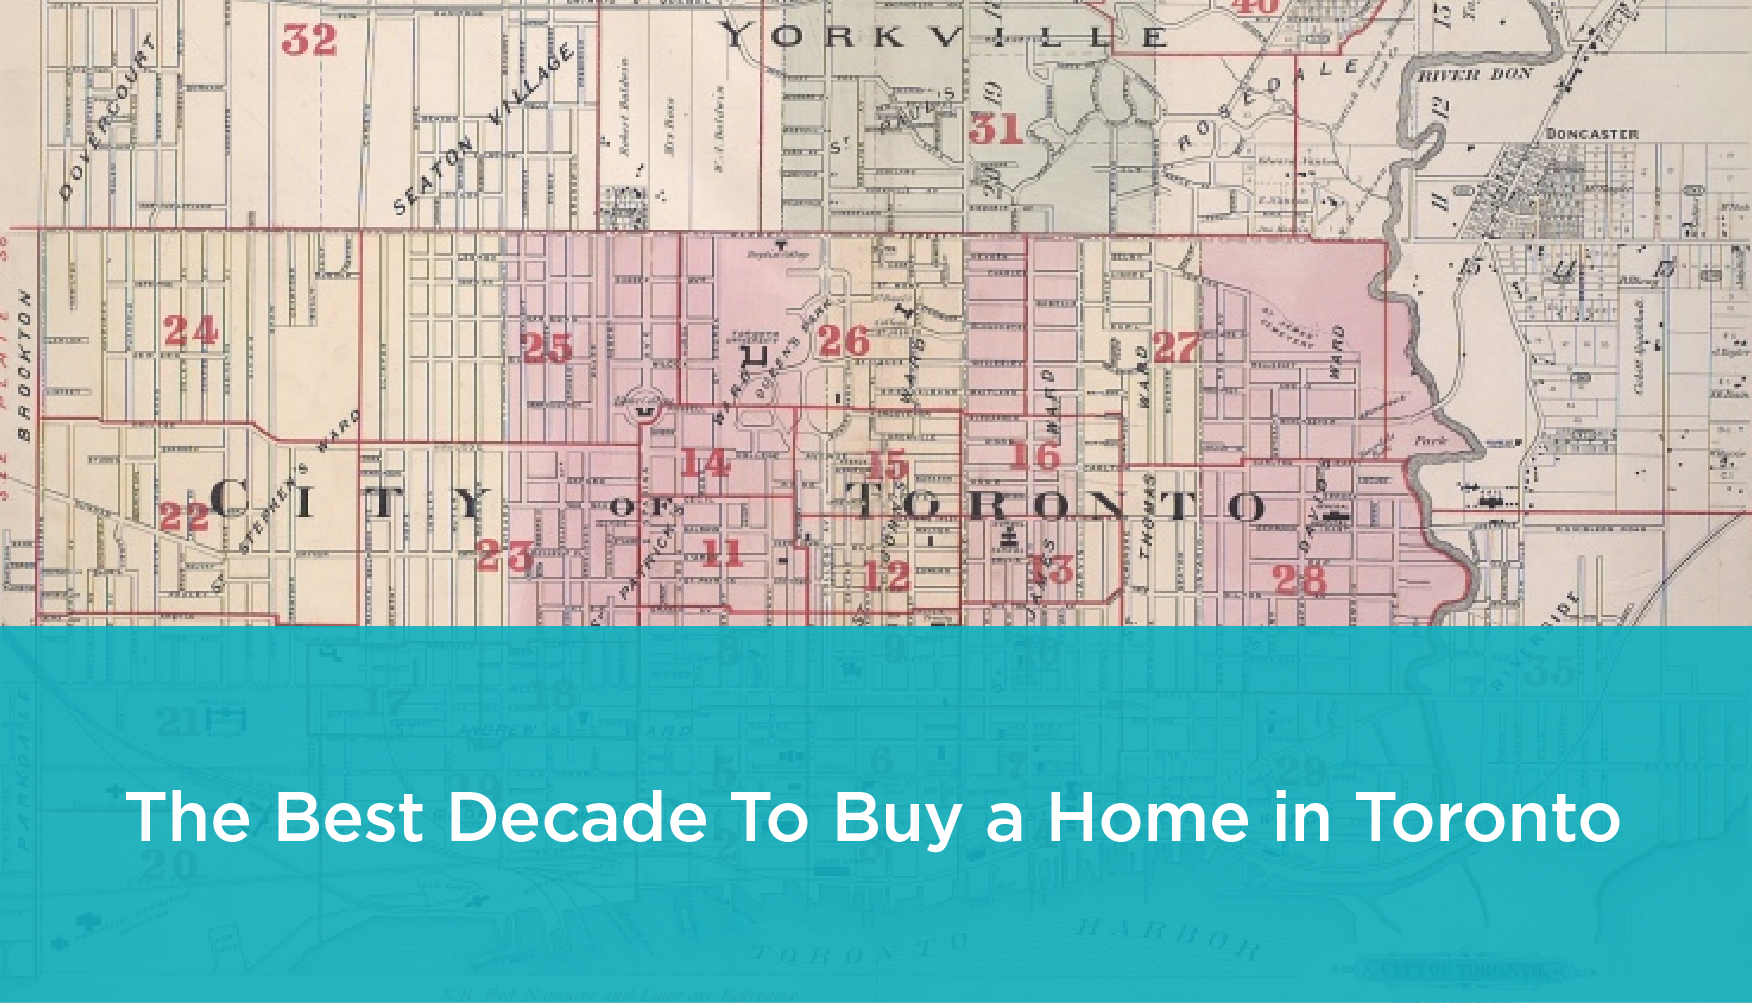 What Was the Best Decade to Buy a Home in Toronto?